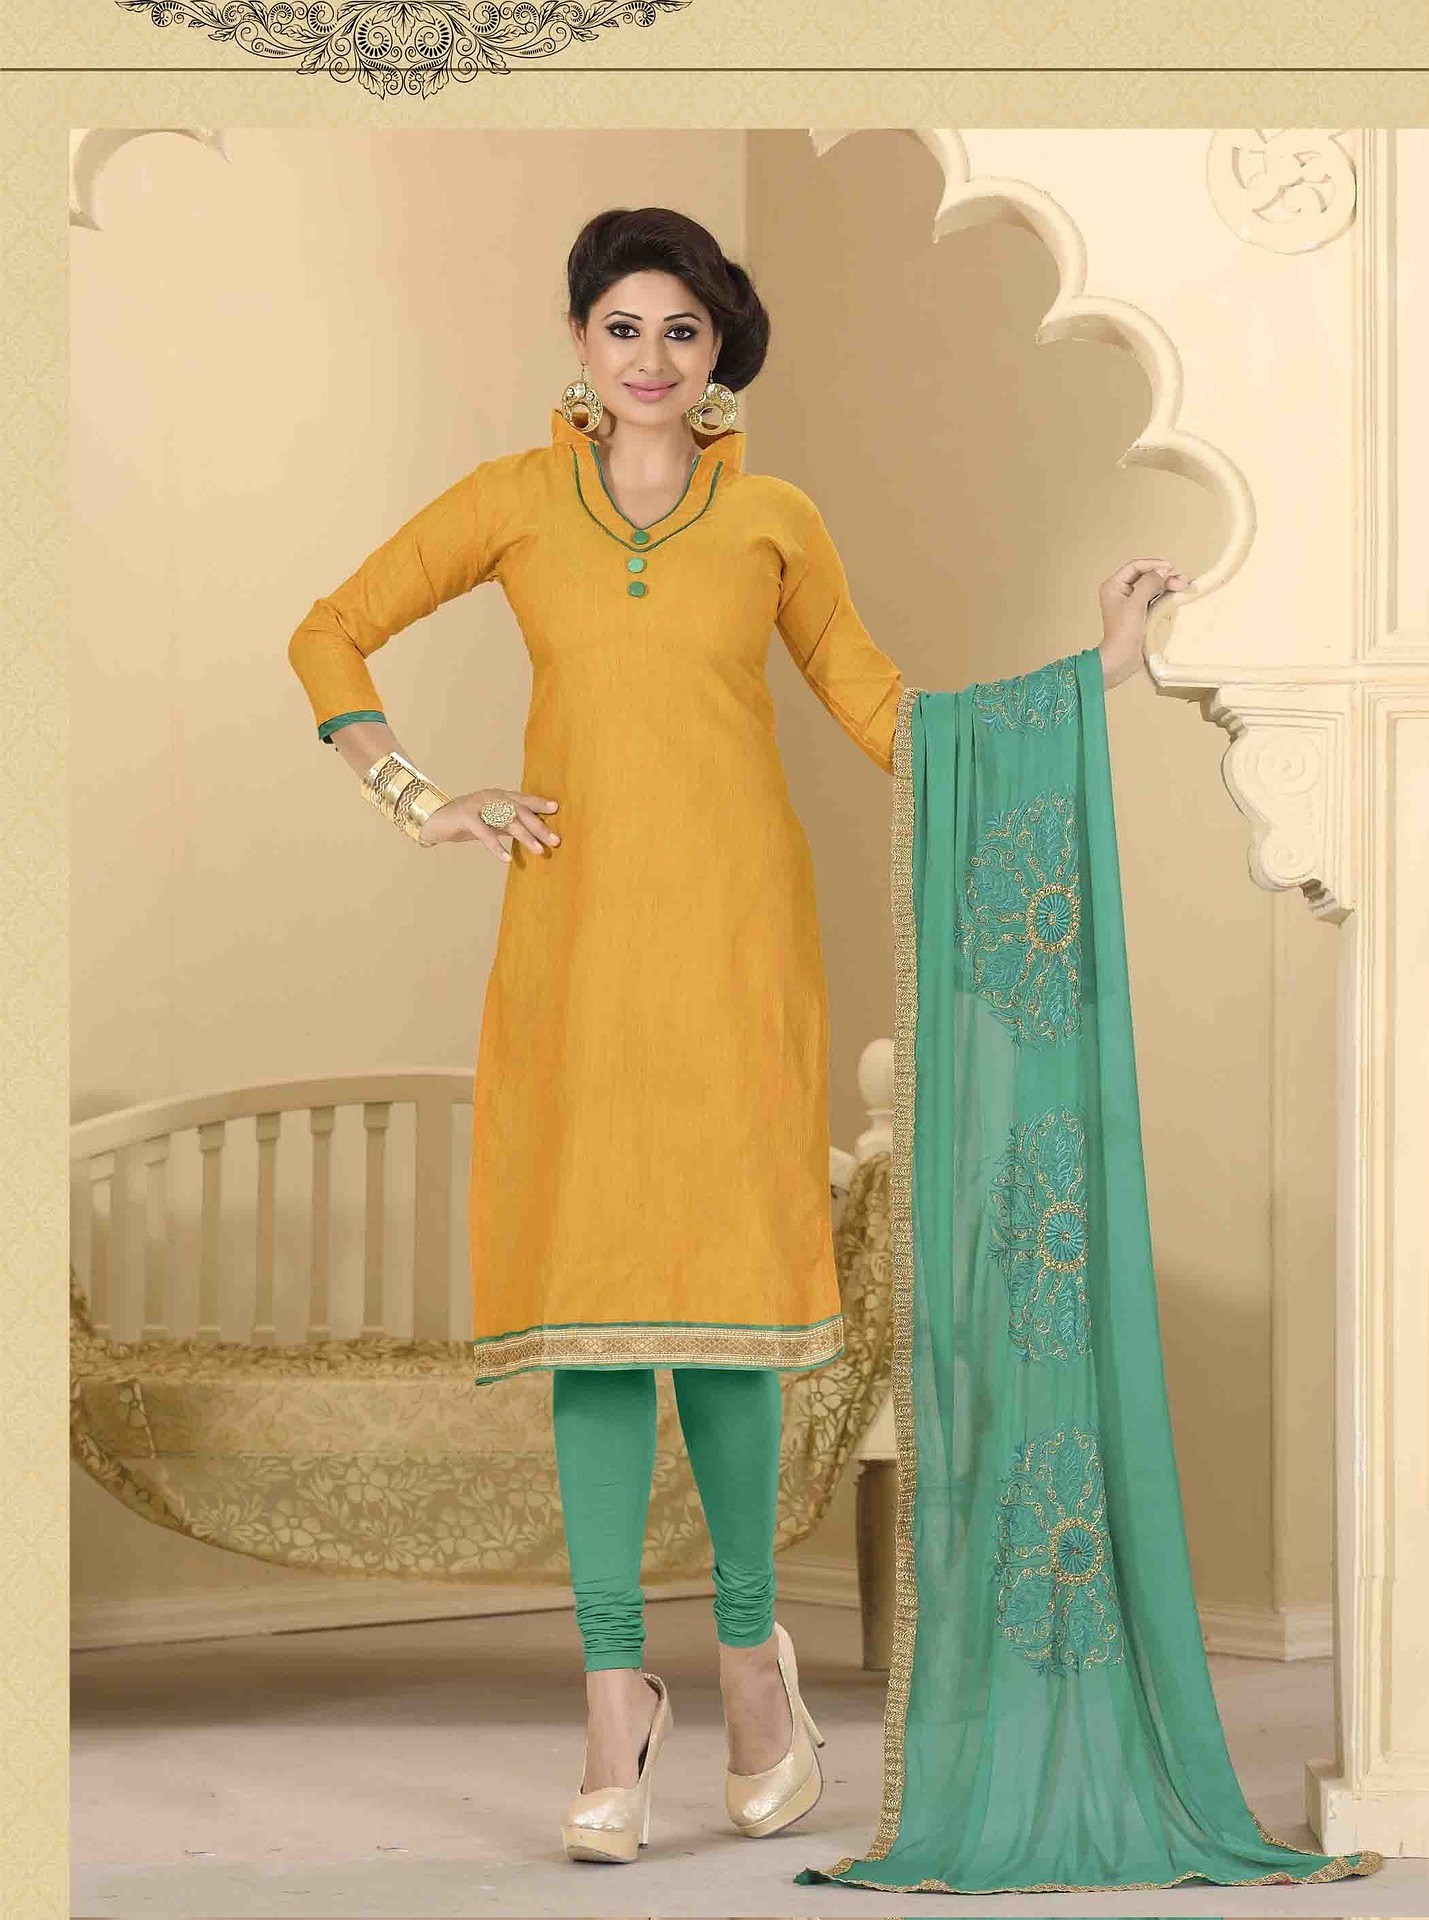 011 Salwar Kameez 846702 1920 Essay On My Favourite Dress Sensational Full